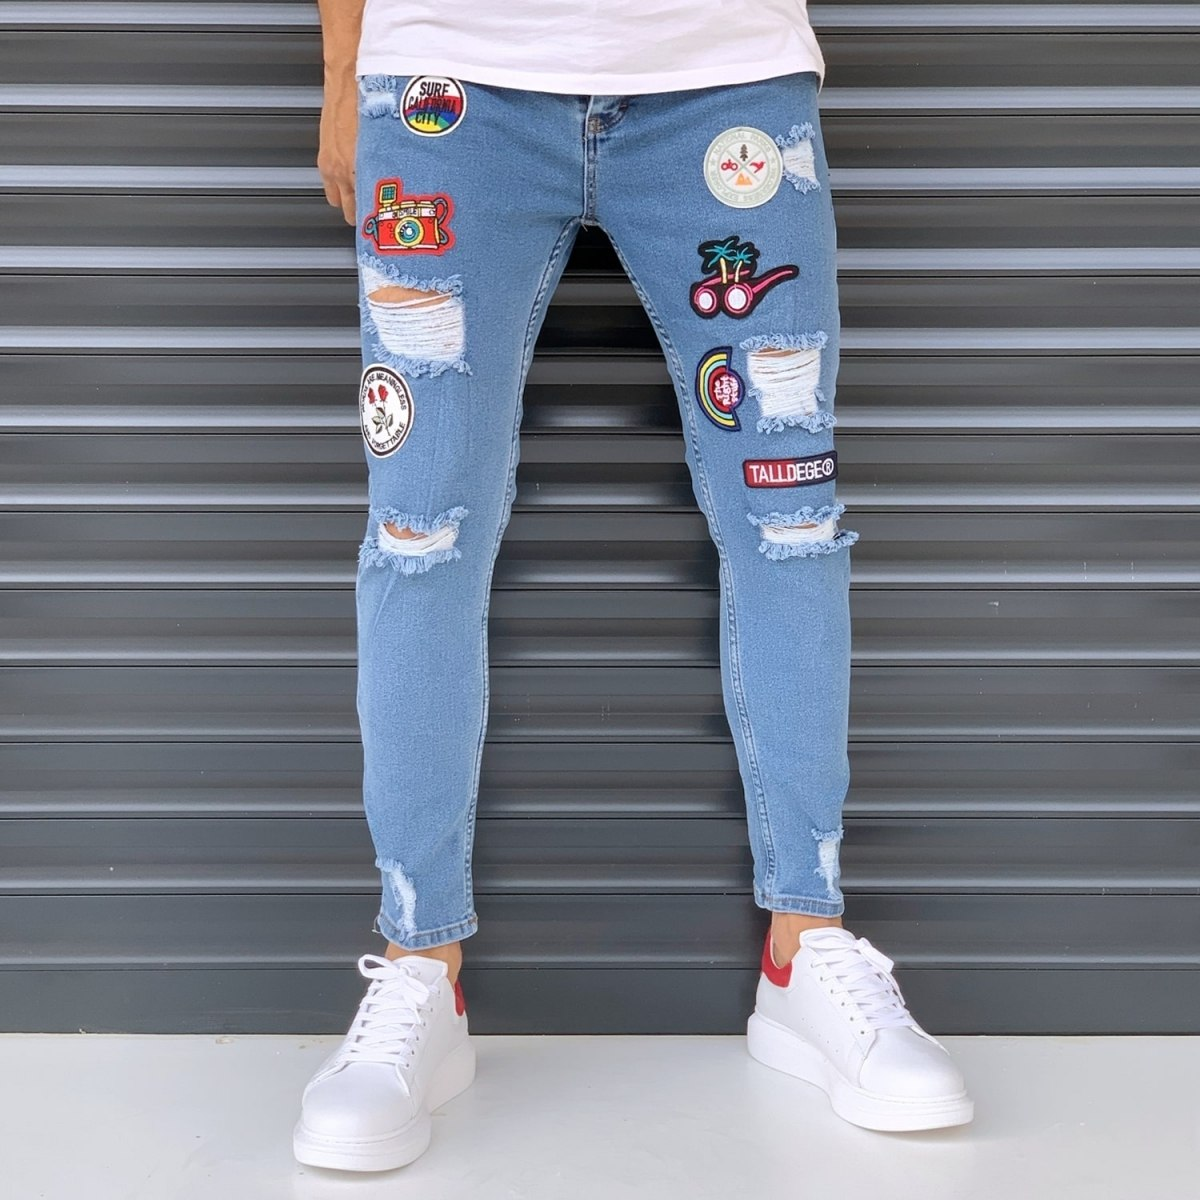 Men's Jeans With Heavy Rips And Patchworks Denim Blue Mv Premium Brand - 1